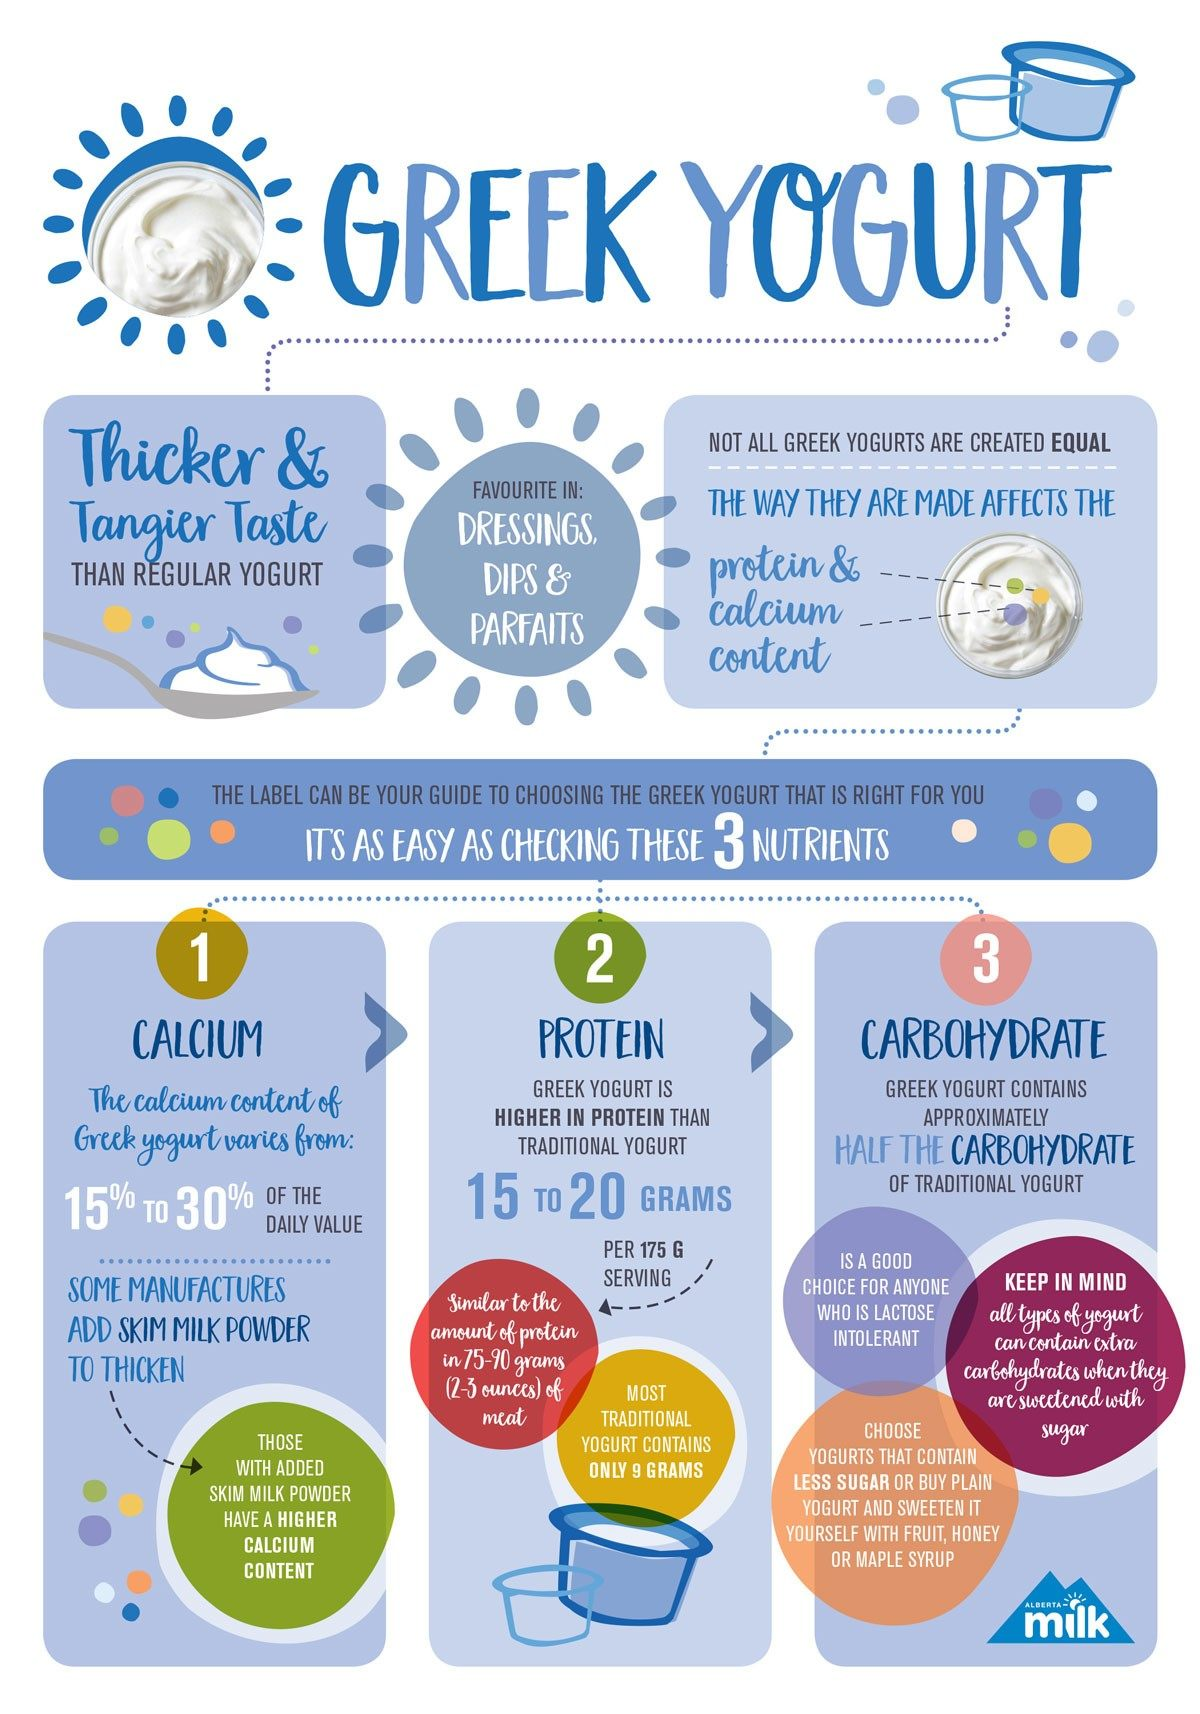 Greek yogurt is one of the best foods to help boost physical energy